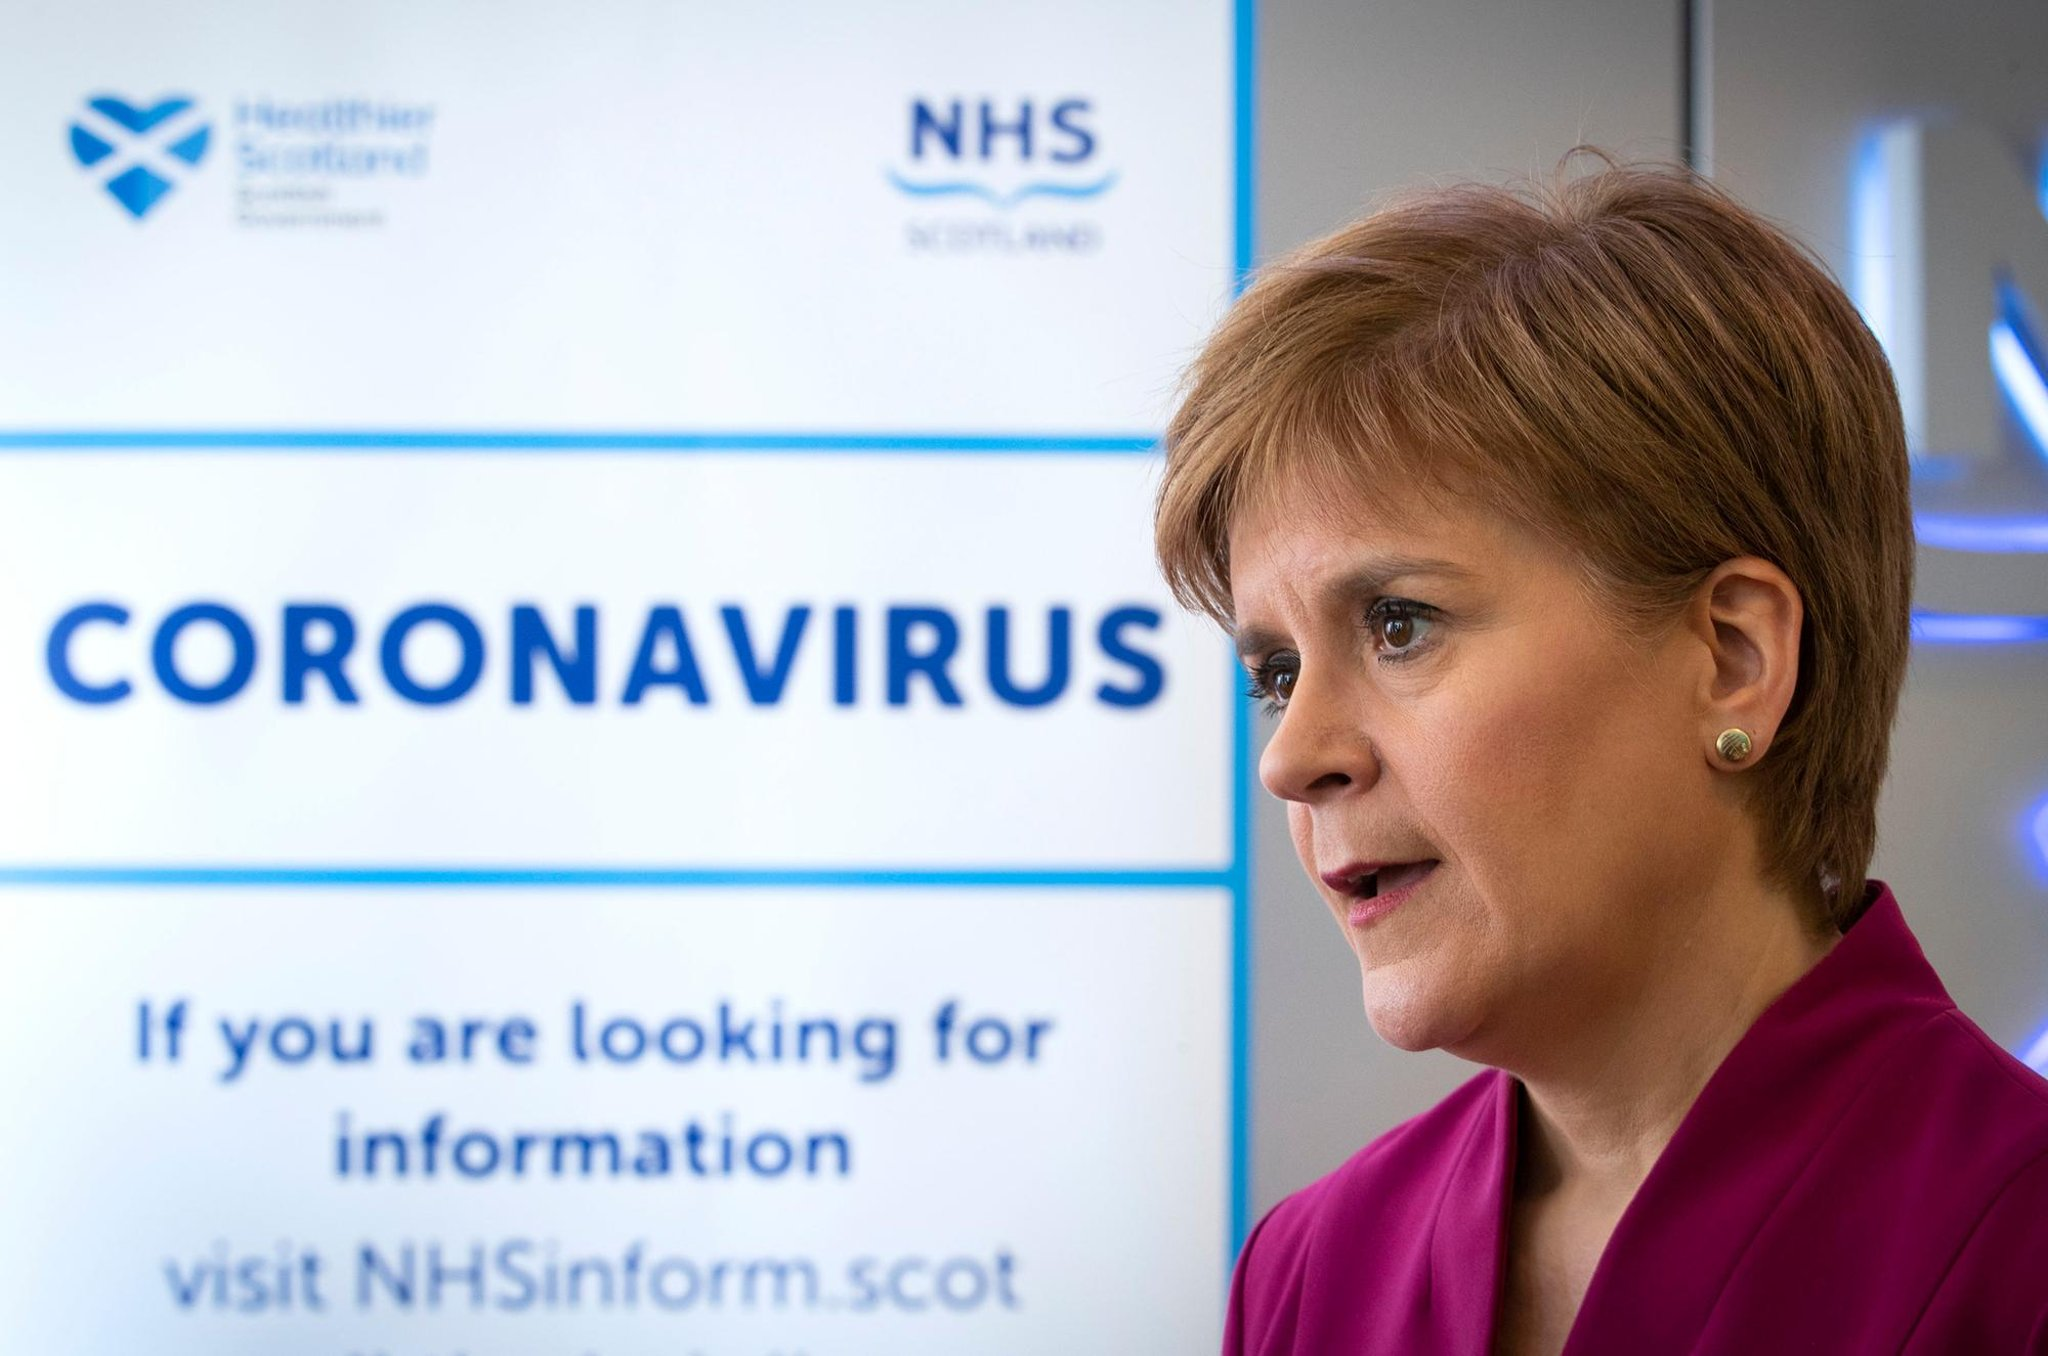 Covid Scotland: Nicola Sturgeon says 'no abrupt end' to social distancing and masks even in Level 0